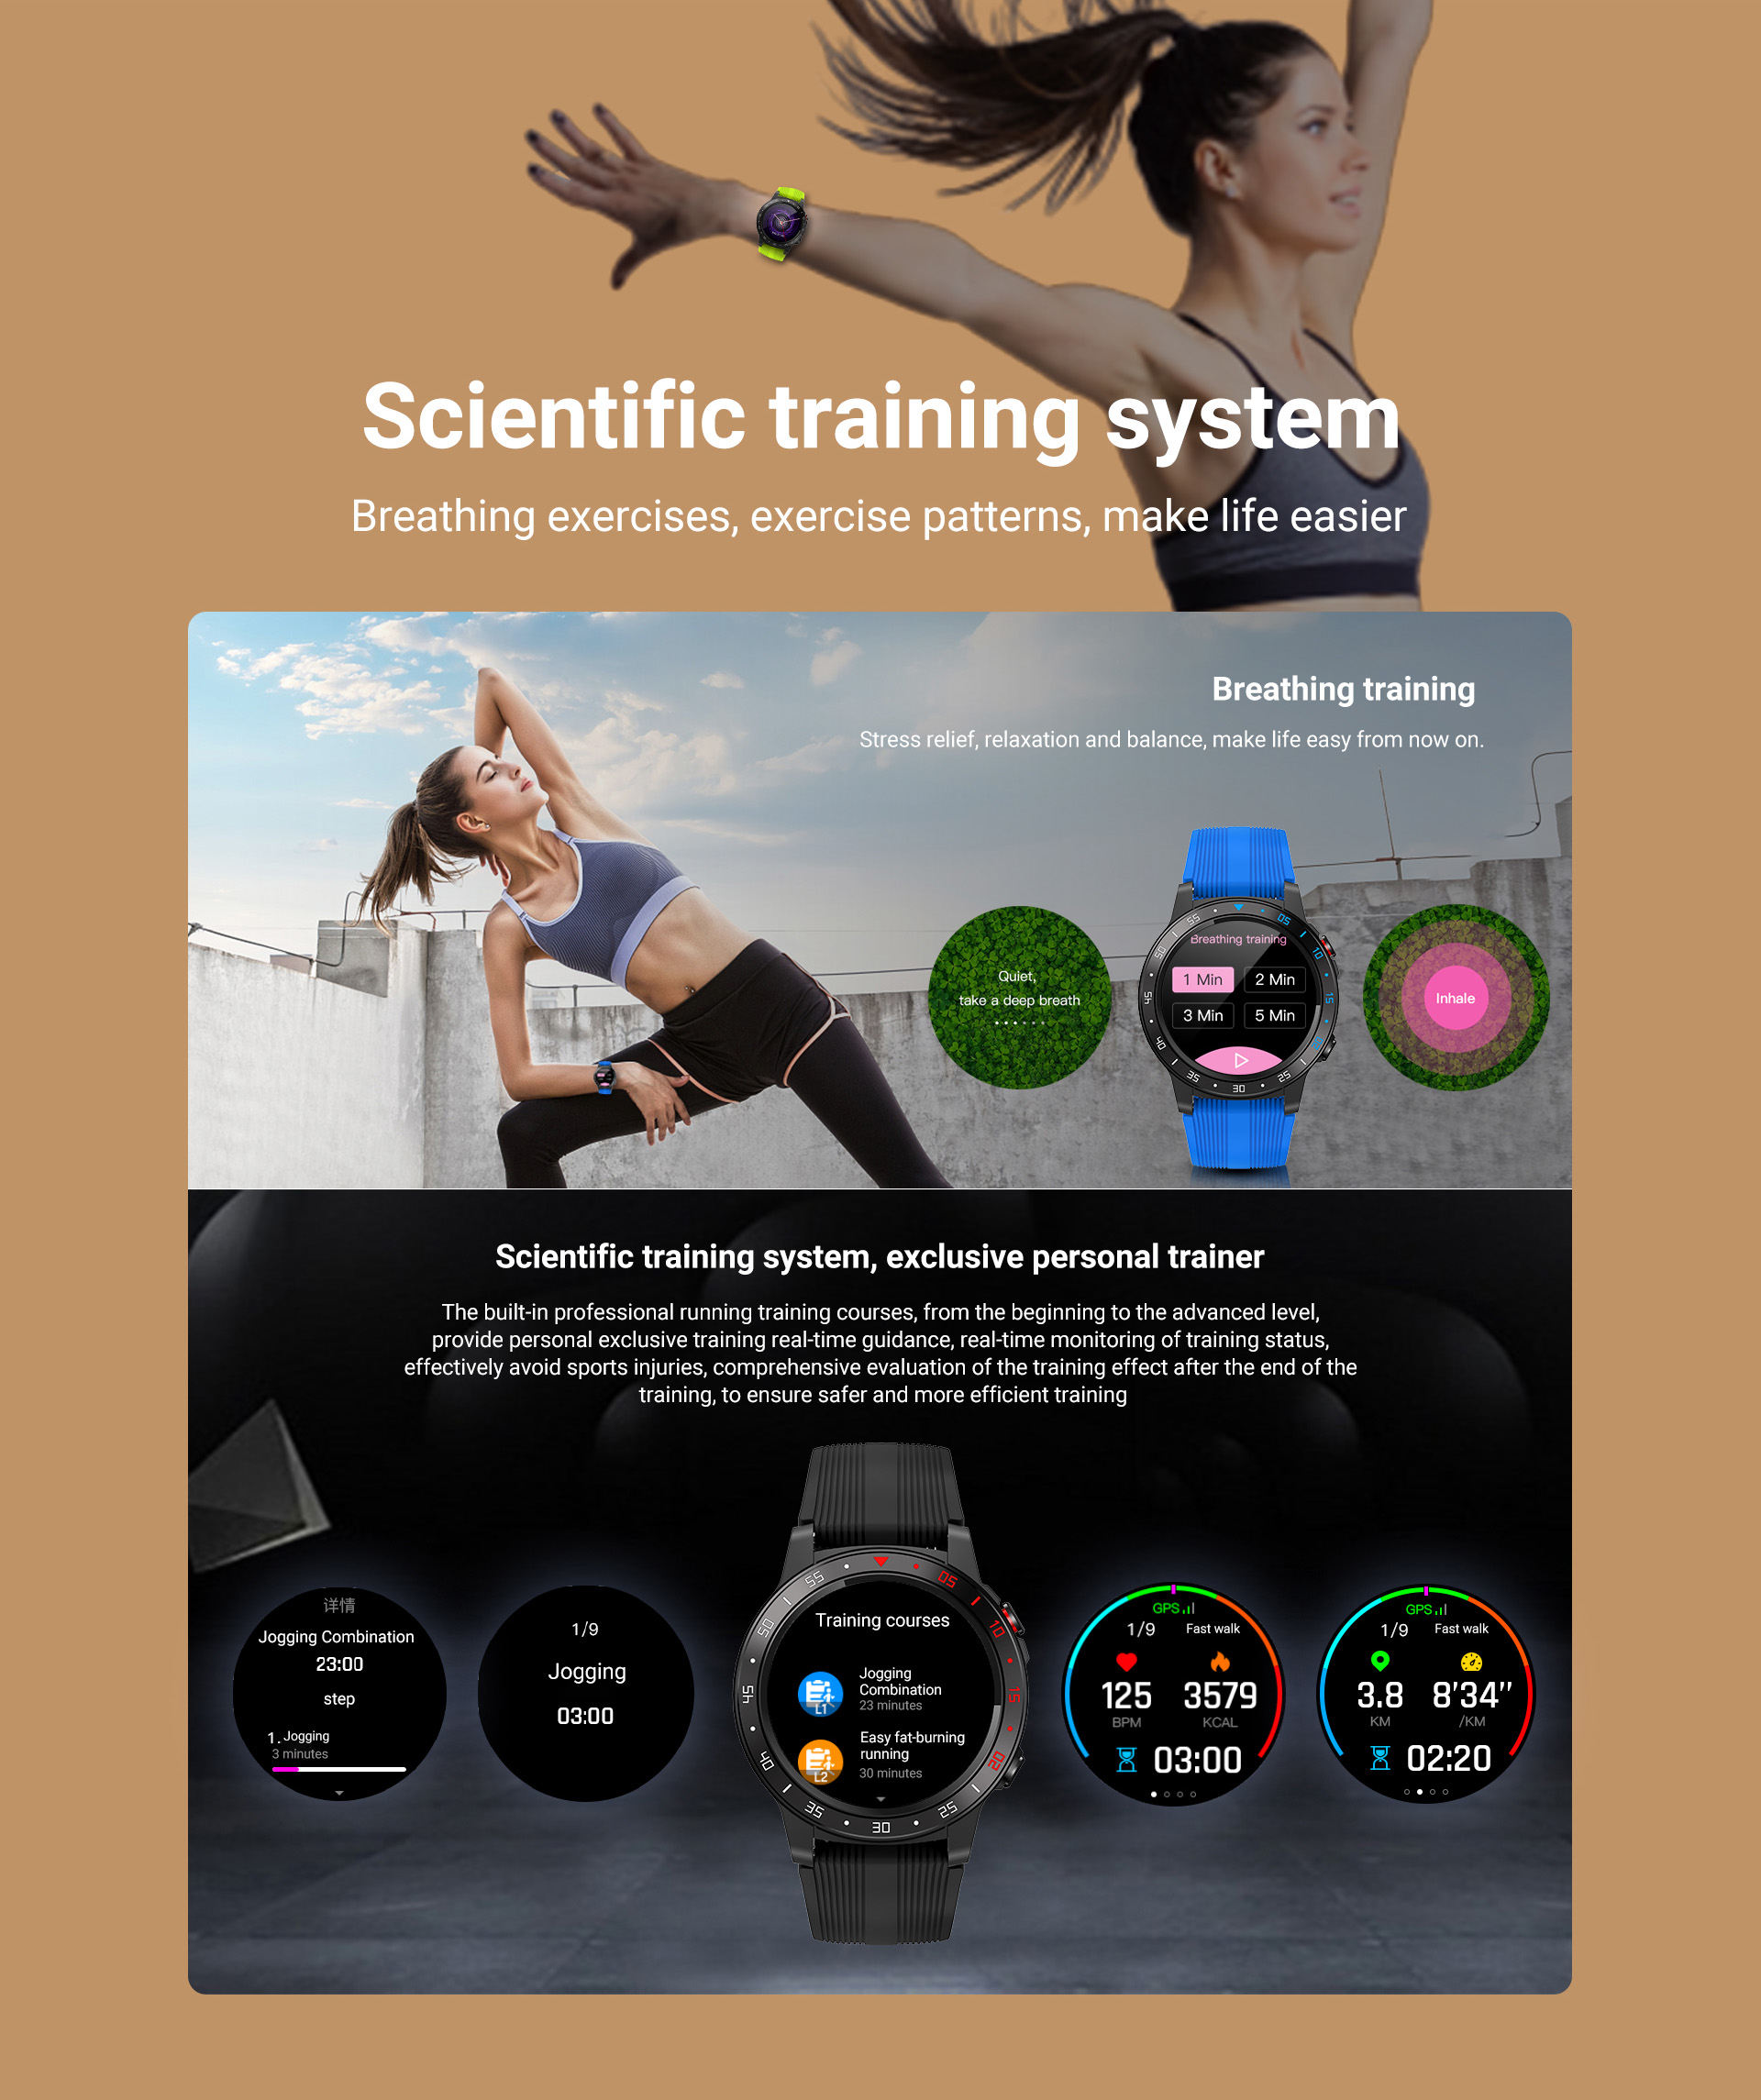 H4512ecd23c89433990cf51a0a4e52ab7H GPS Smartwatch Men With SIM Card Fitness Compass Barometer Altitude M5 Mi Smart Watch Men Women 2021 for Android Xiaomi